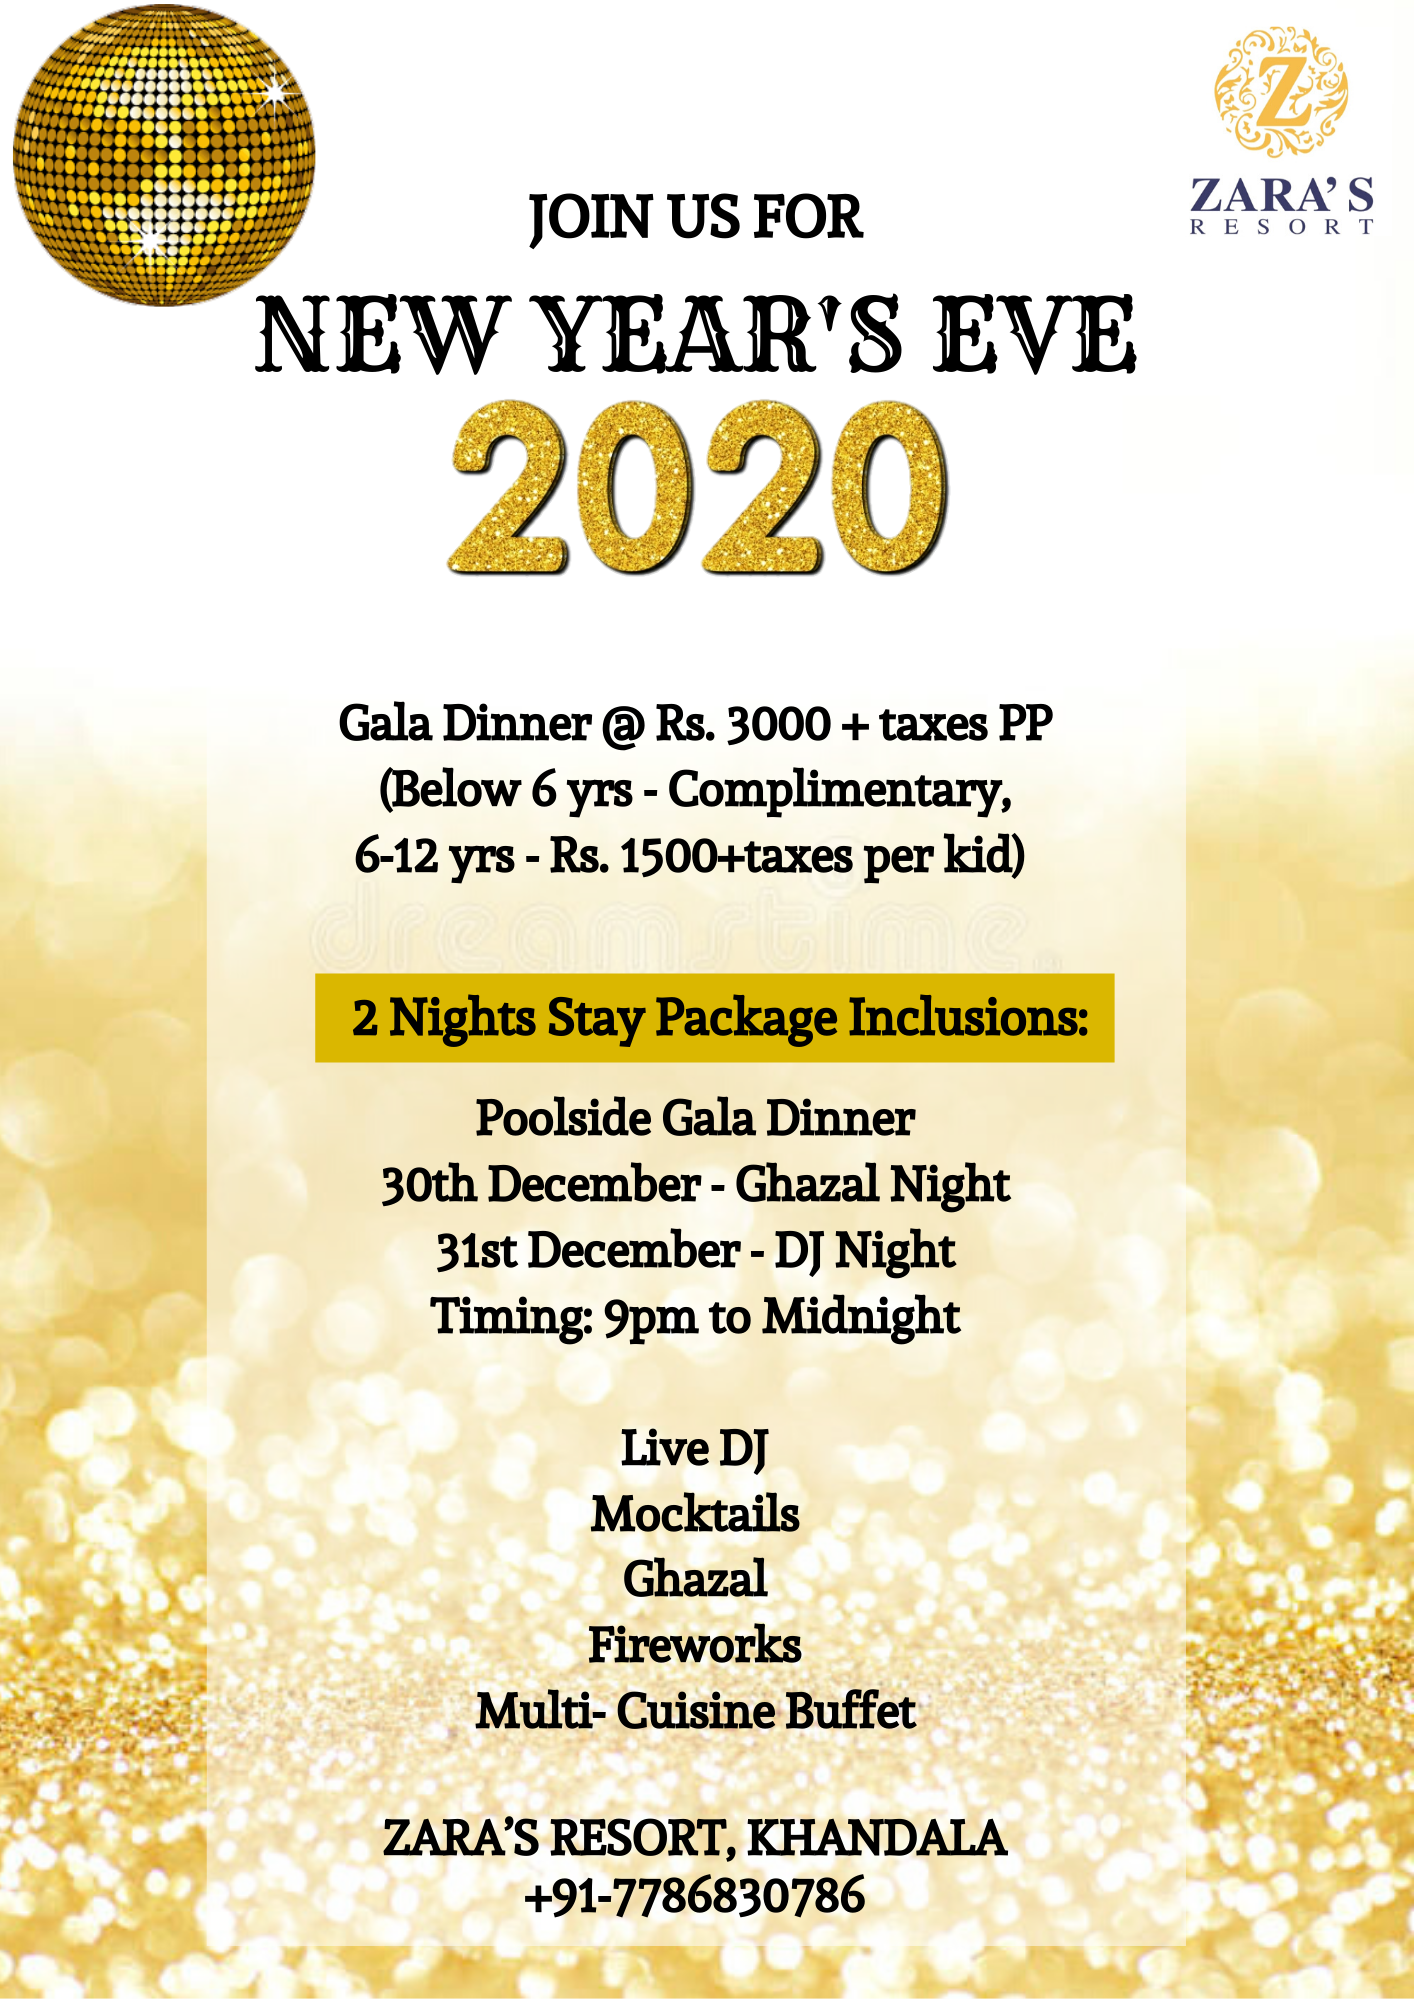 Join us for New Year's Eve Party with friends & family